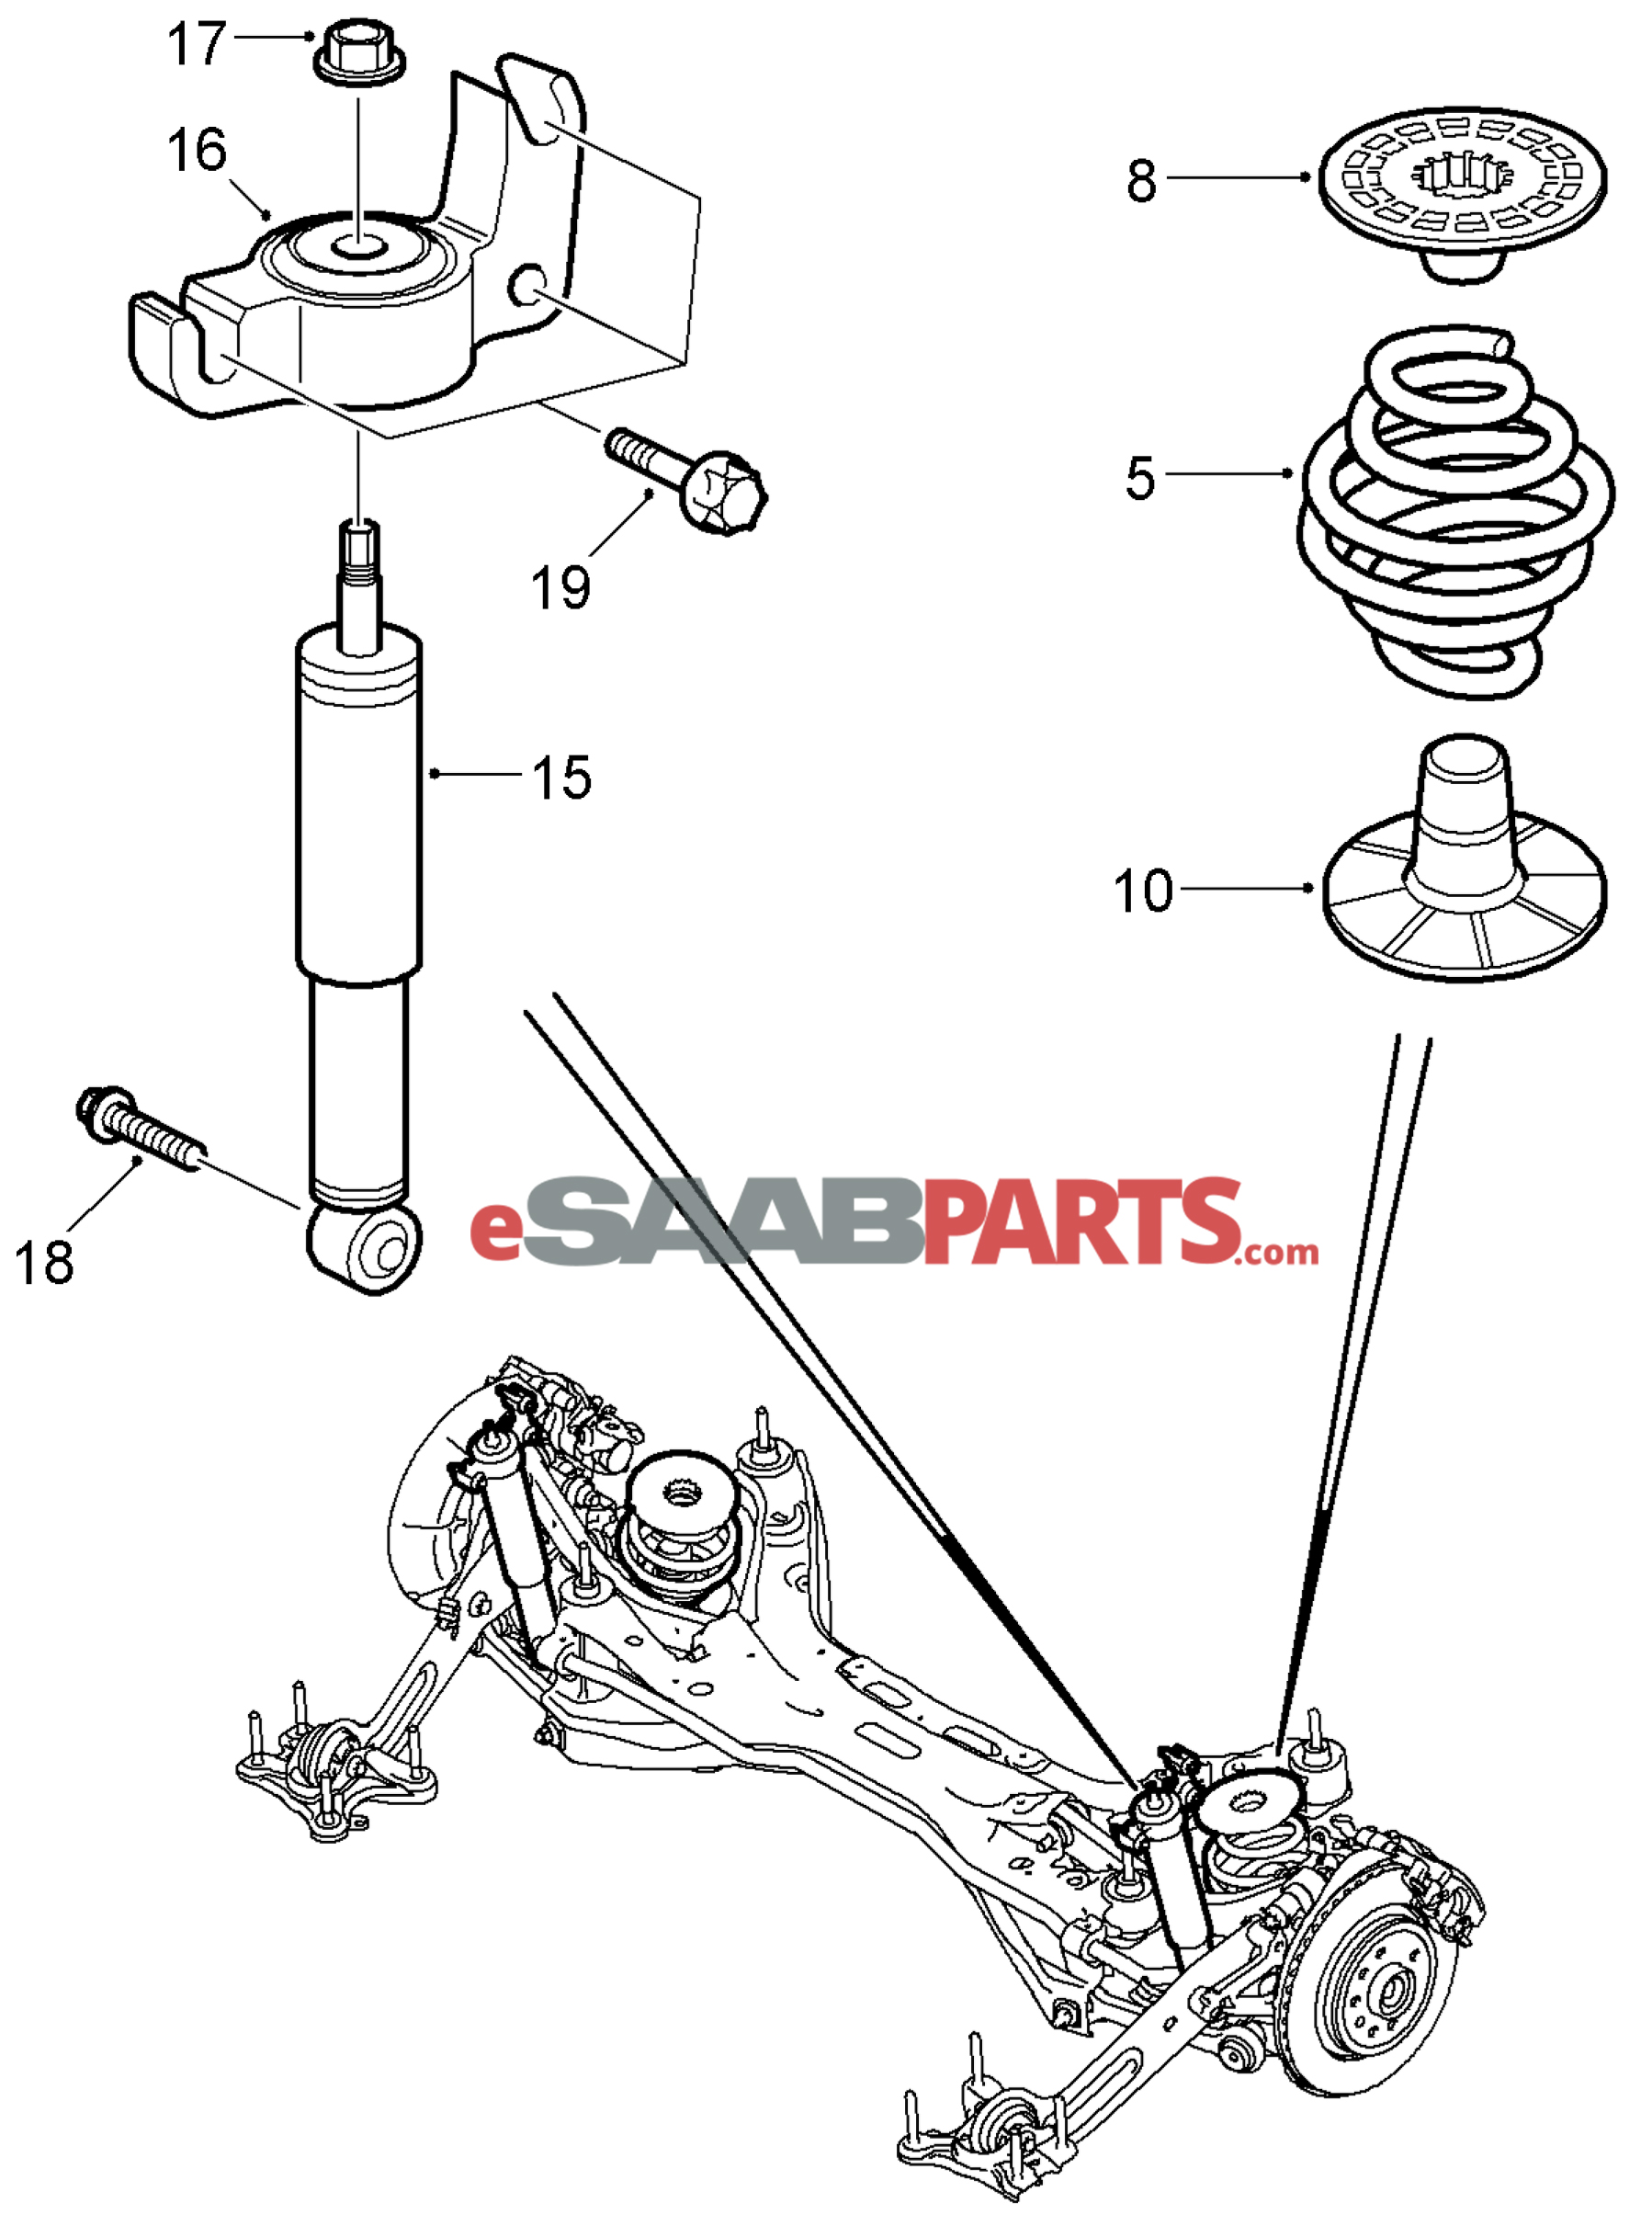 12802494 saab bump stop rear lower fwd genuine saab parts rh esaabparts com saab 93 suspension diagram saab 93 front suspension diagram